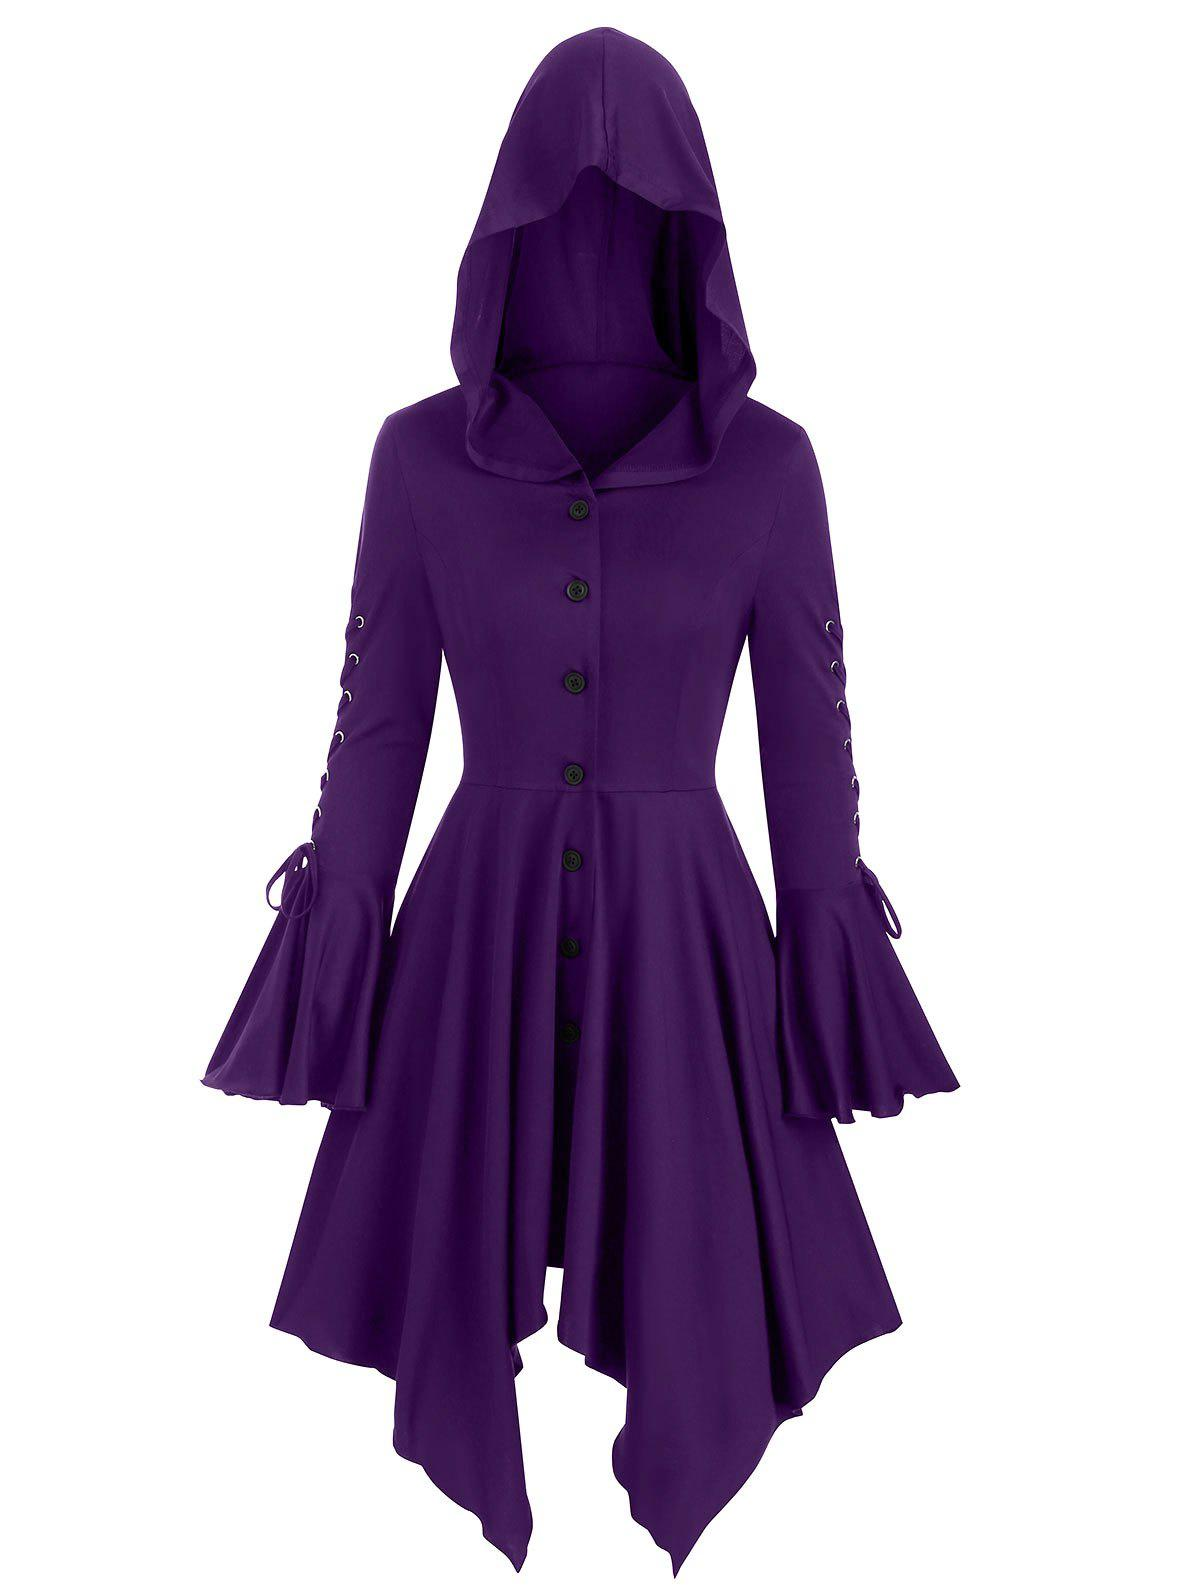 Hooded Lace-up Poet Sleeve Button Up Hanky Hem Skirted Gothic Coat - PURPLE IRIS L